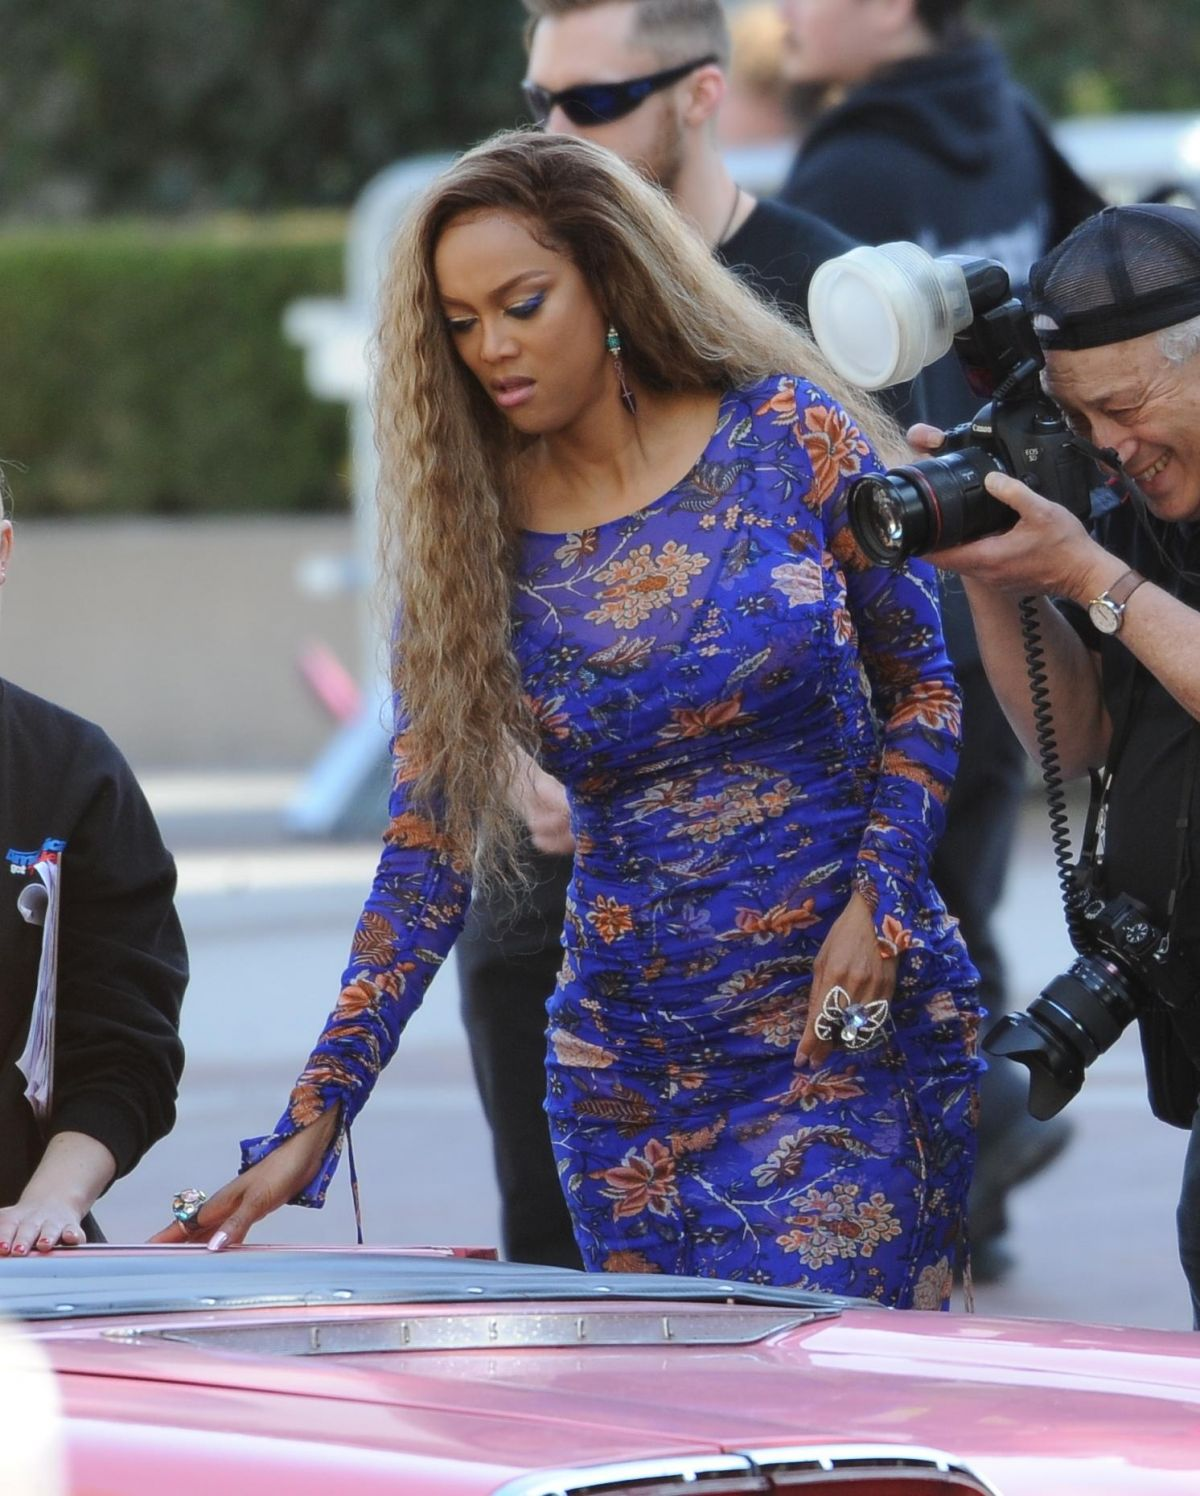 Tyra Banks Got Talent: Tyra Banks At 'America's Got Talent' Auditions In Pasadena